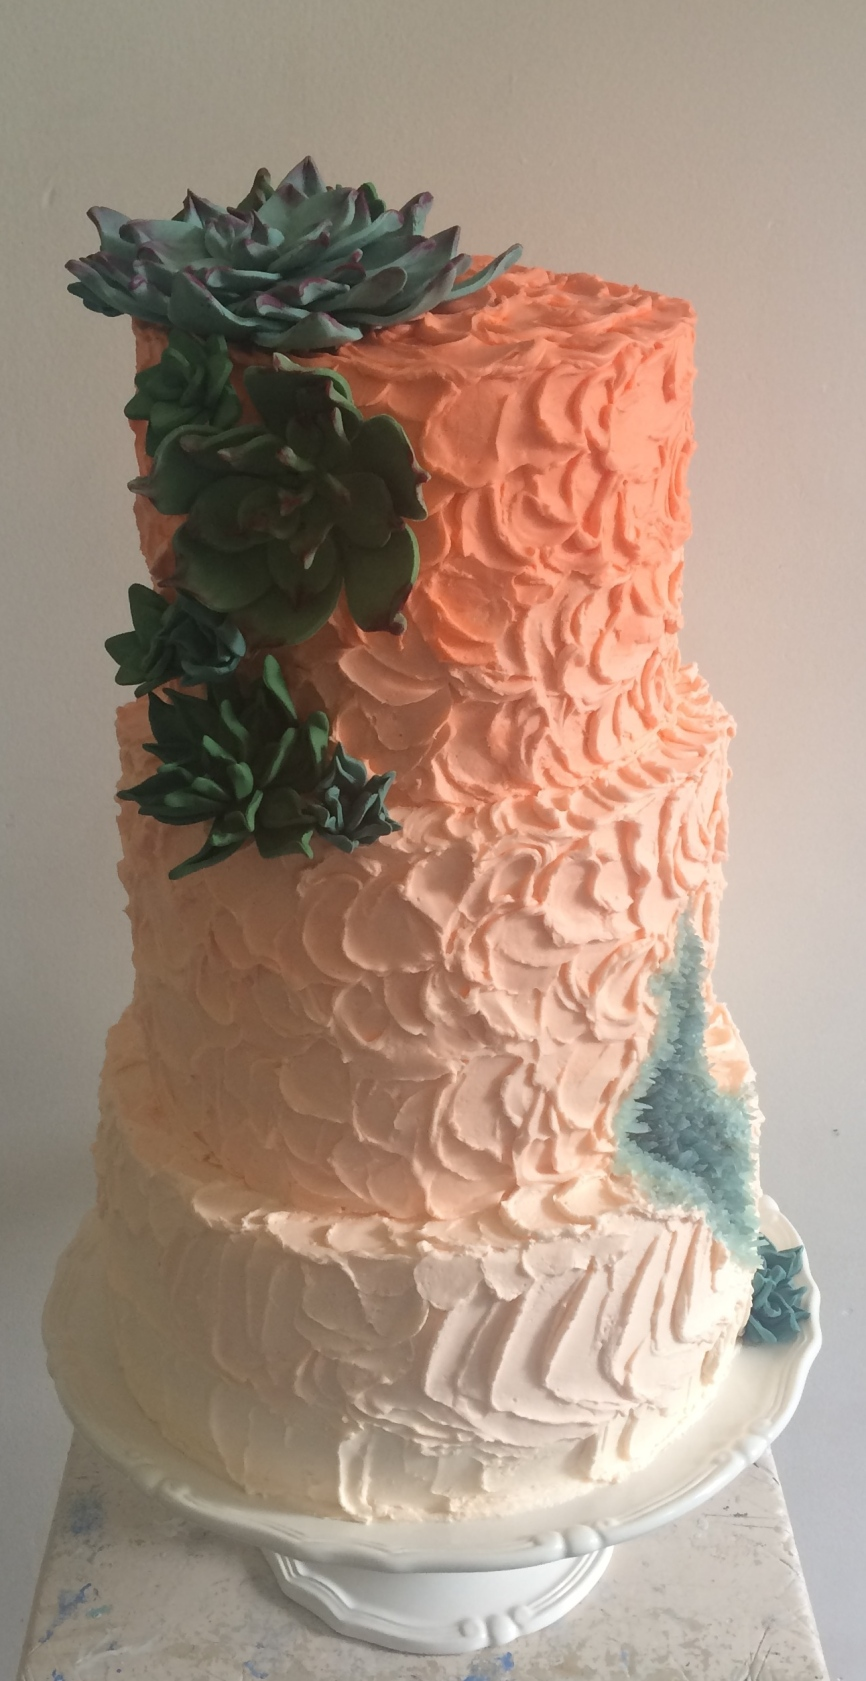 Geode and succulent wedding cake with peach ombre buttercream icing